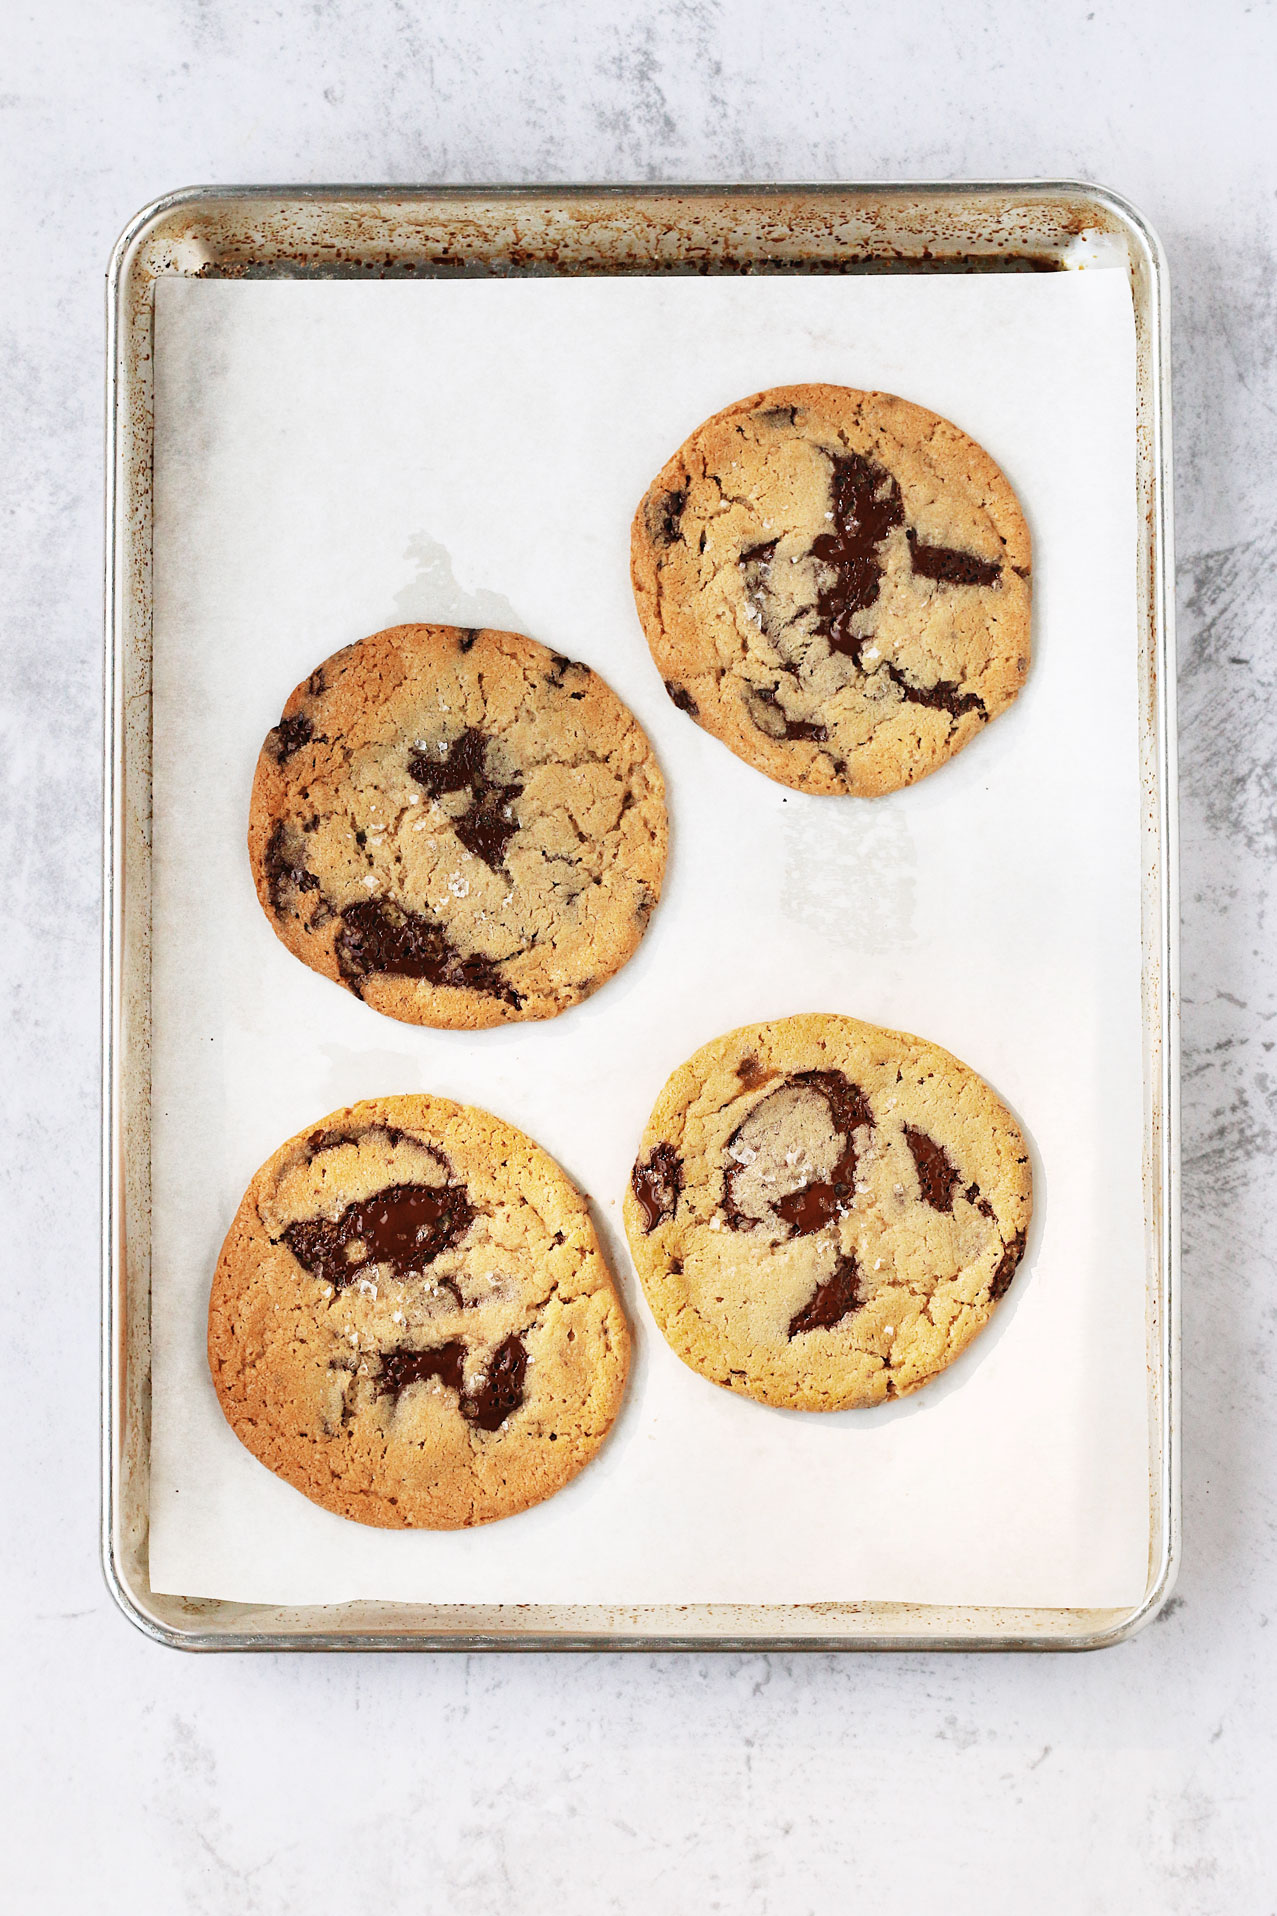 herbakinglab-best-chocolate-chip-cookie-bake-off-jacques-torres-tray